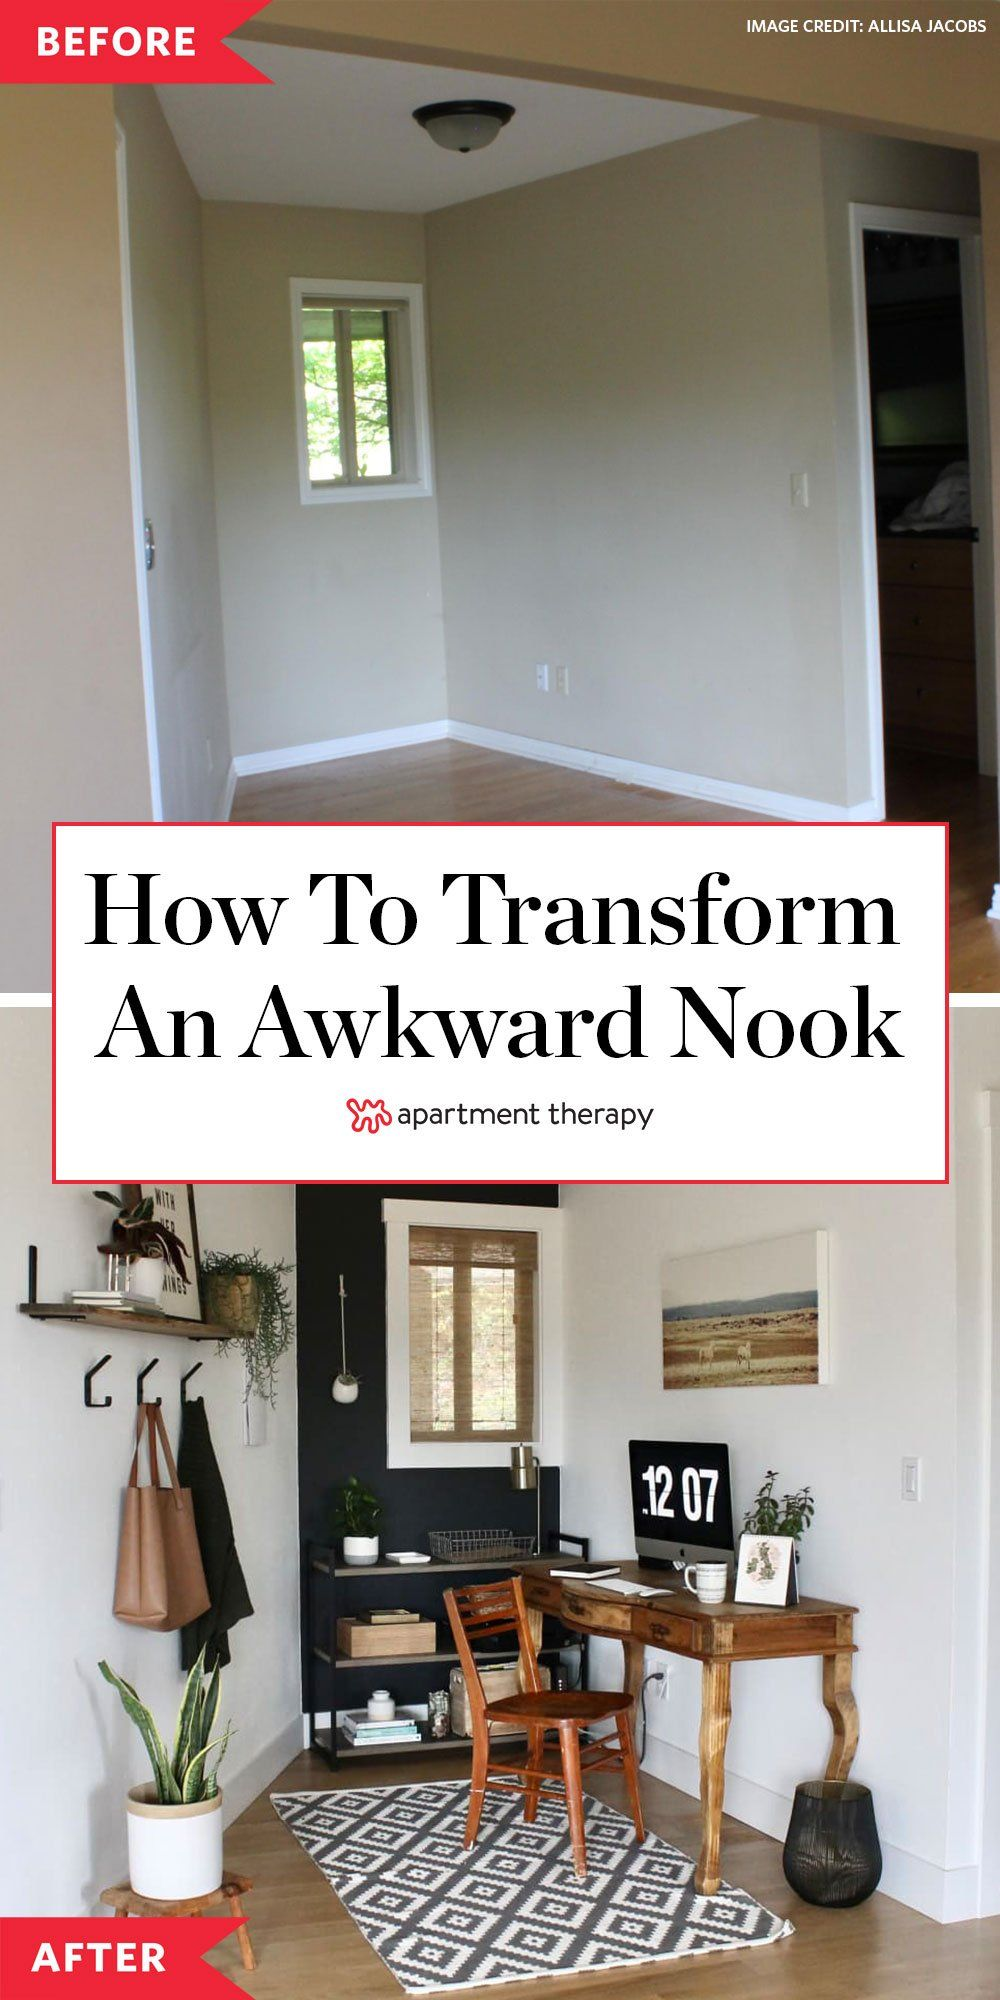 Before And After This Awkward Space Gets The Office Glow Up It Deserves Home Small Space Living Home Decor